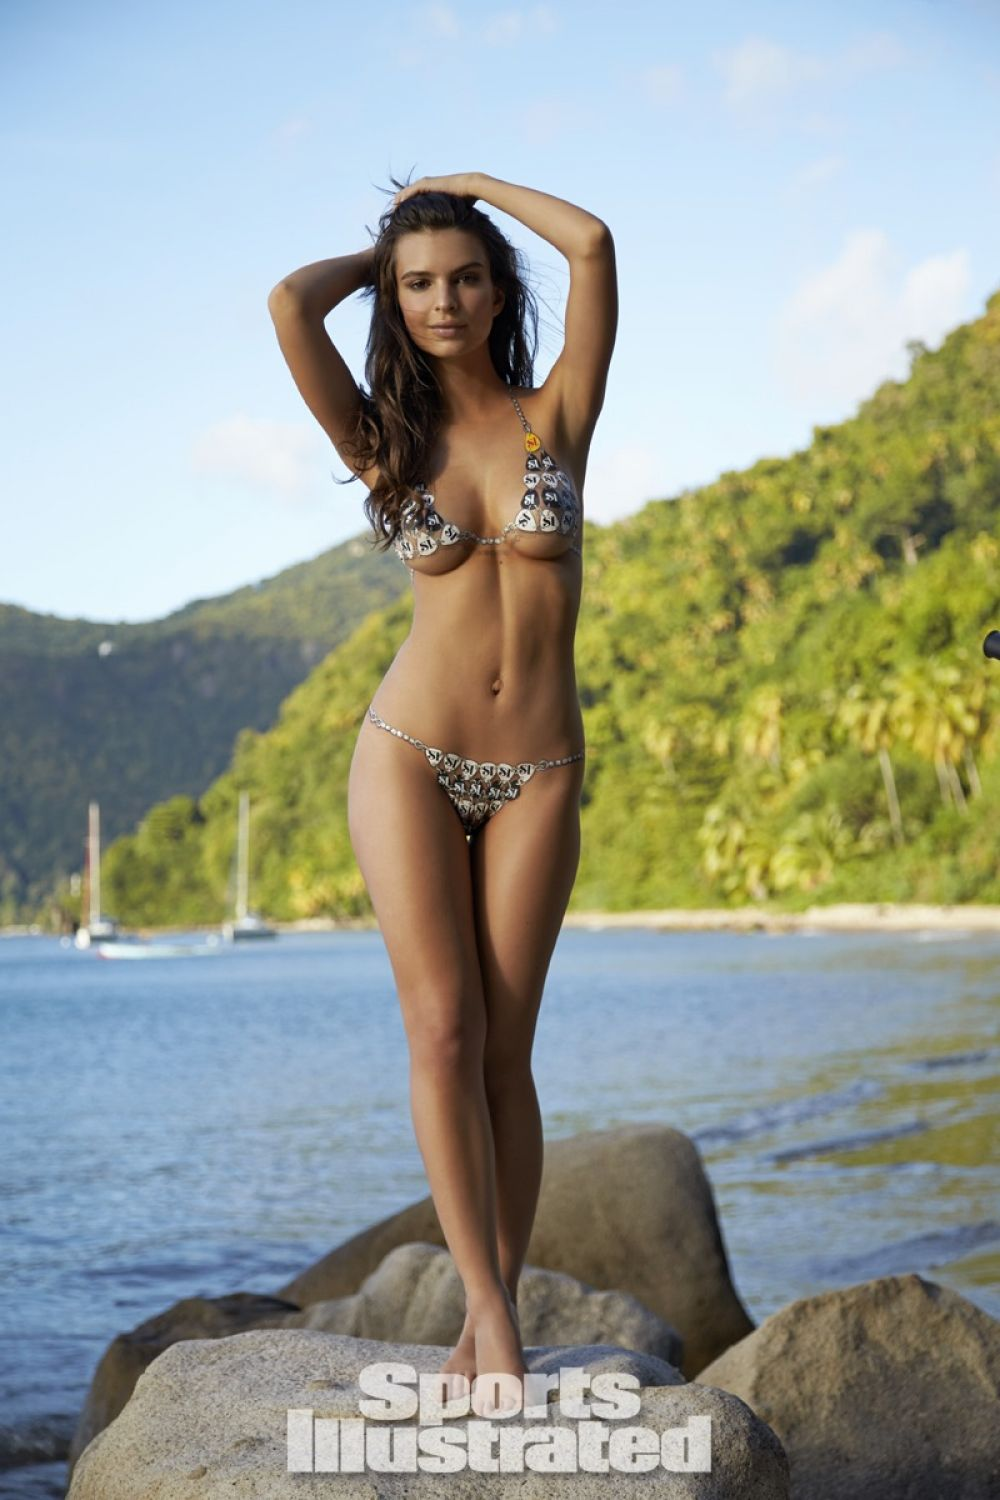 emily-ratajkowski-in-sports-illustrated-2014-swimsuit-issue_8.jpg - 142.10 KB